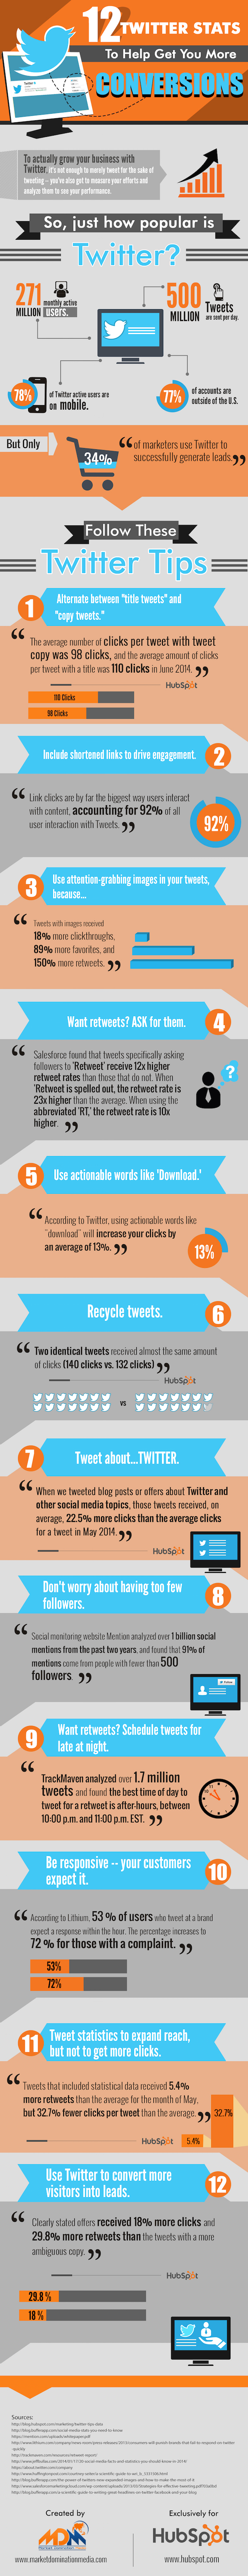 12 Twitter Stats to Help Get You More Conversions Infographic by Hubspot